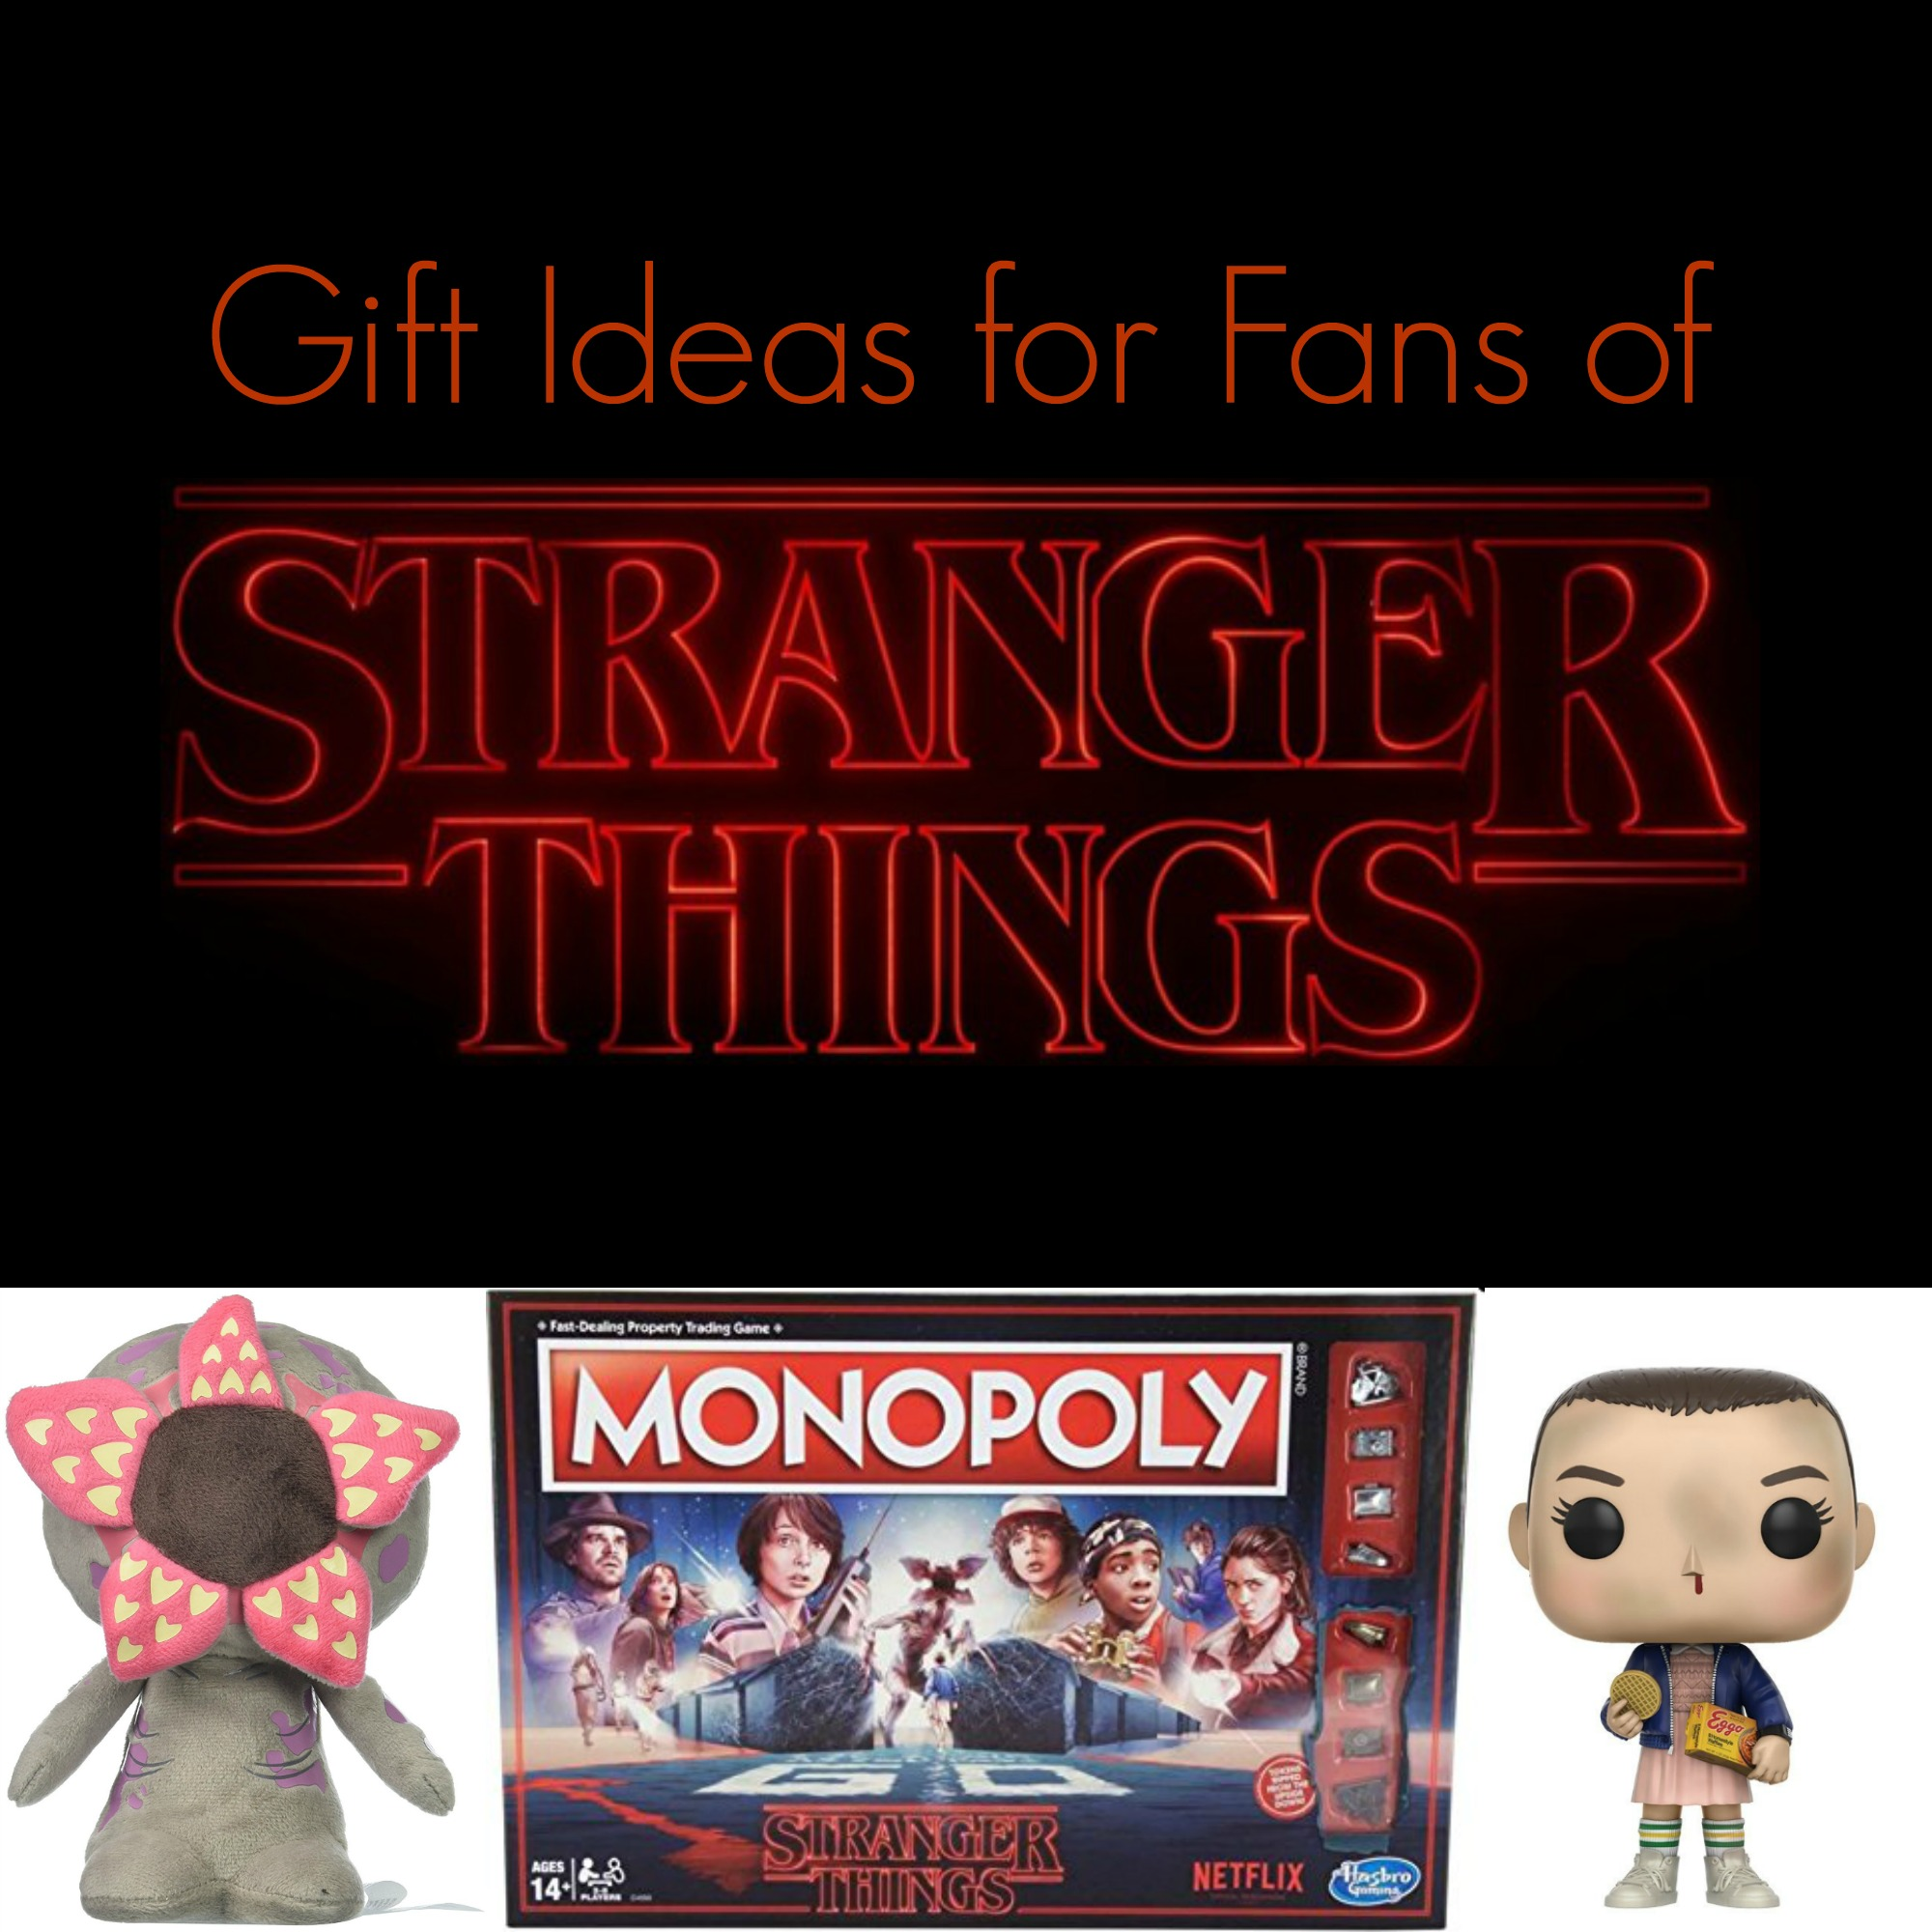 Stranger Things Gifts